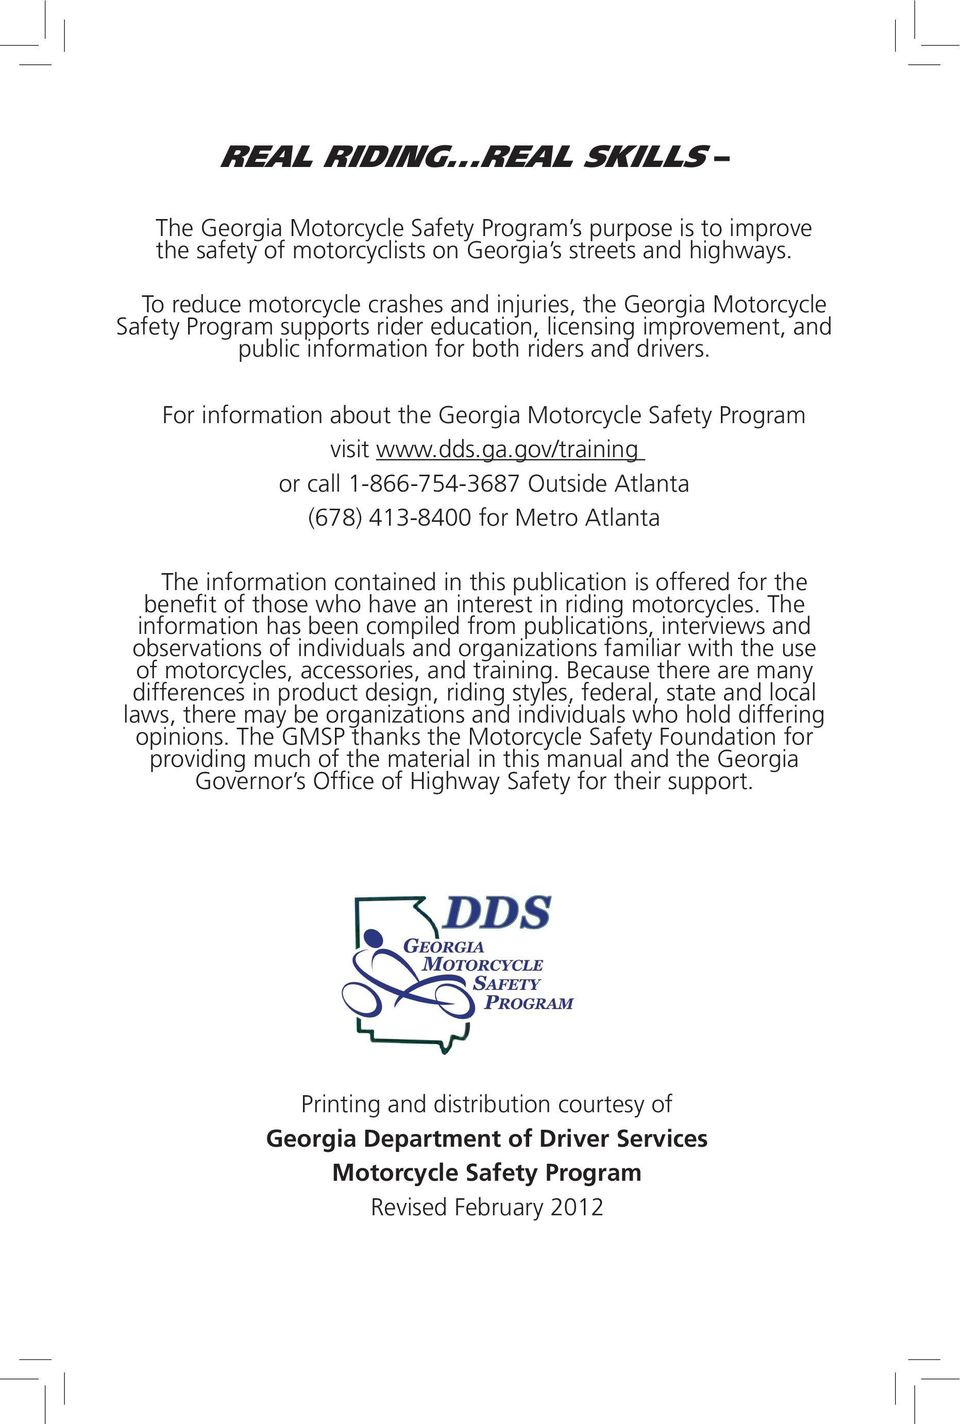 For information about the Georgia Motorcycle Safety Program visit www.dds.ga.